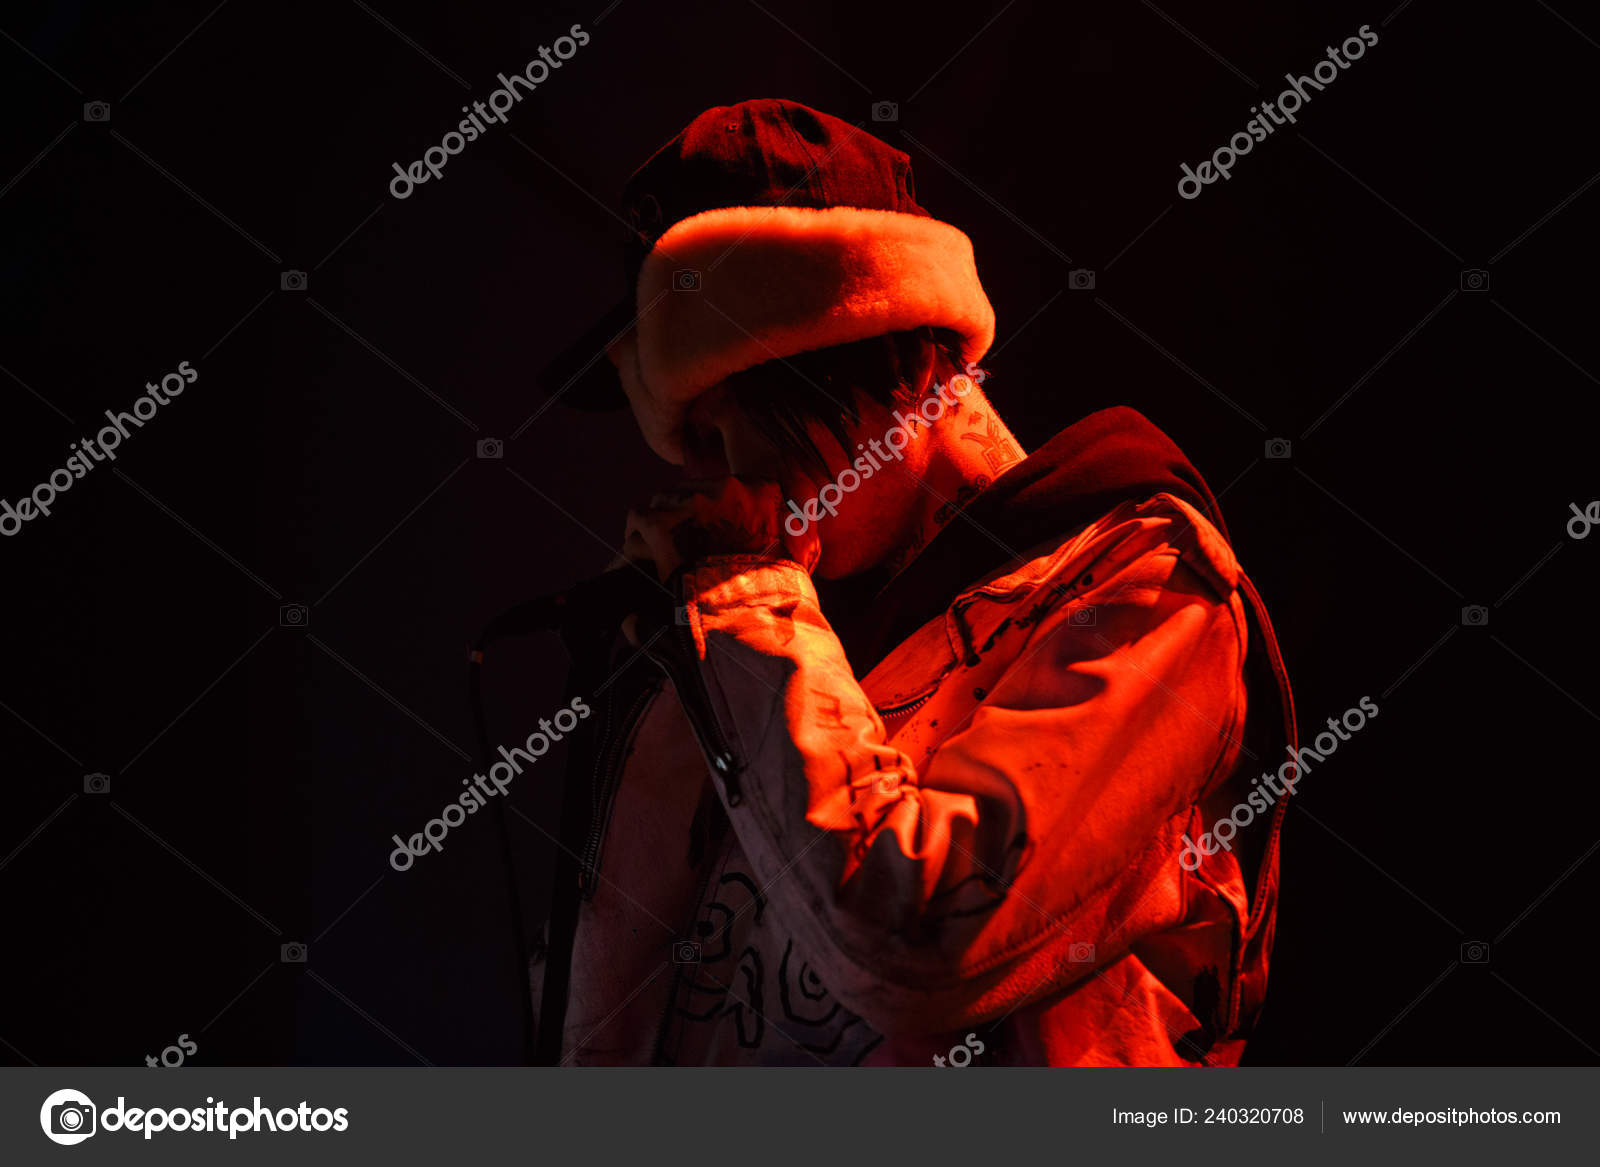 Moscow March 2017 Famous American Emo Trap Singer Lil Peep